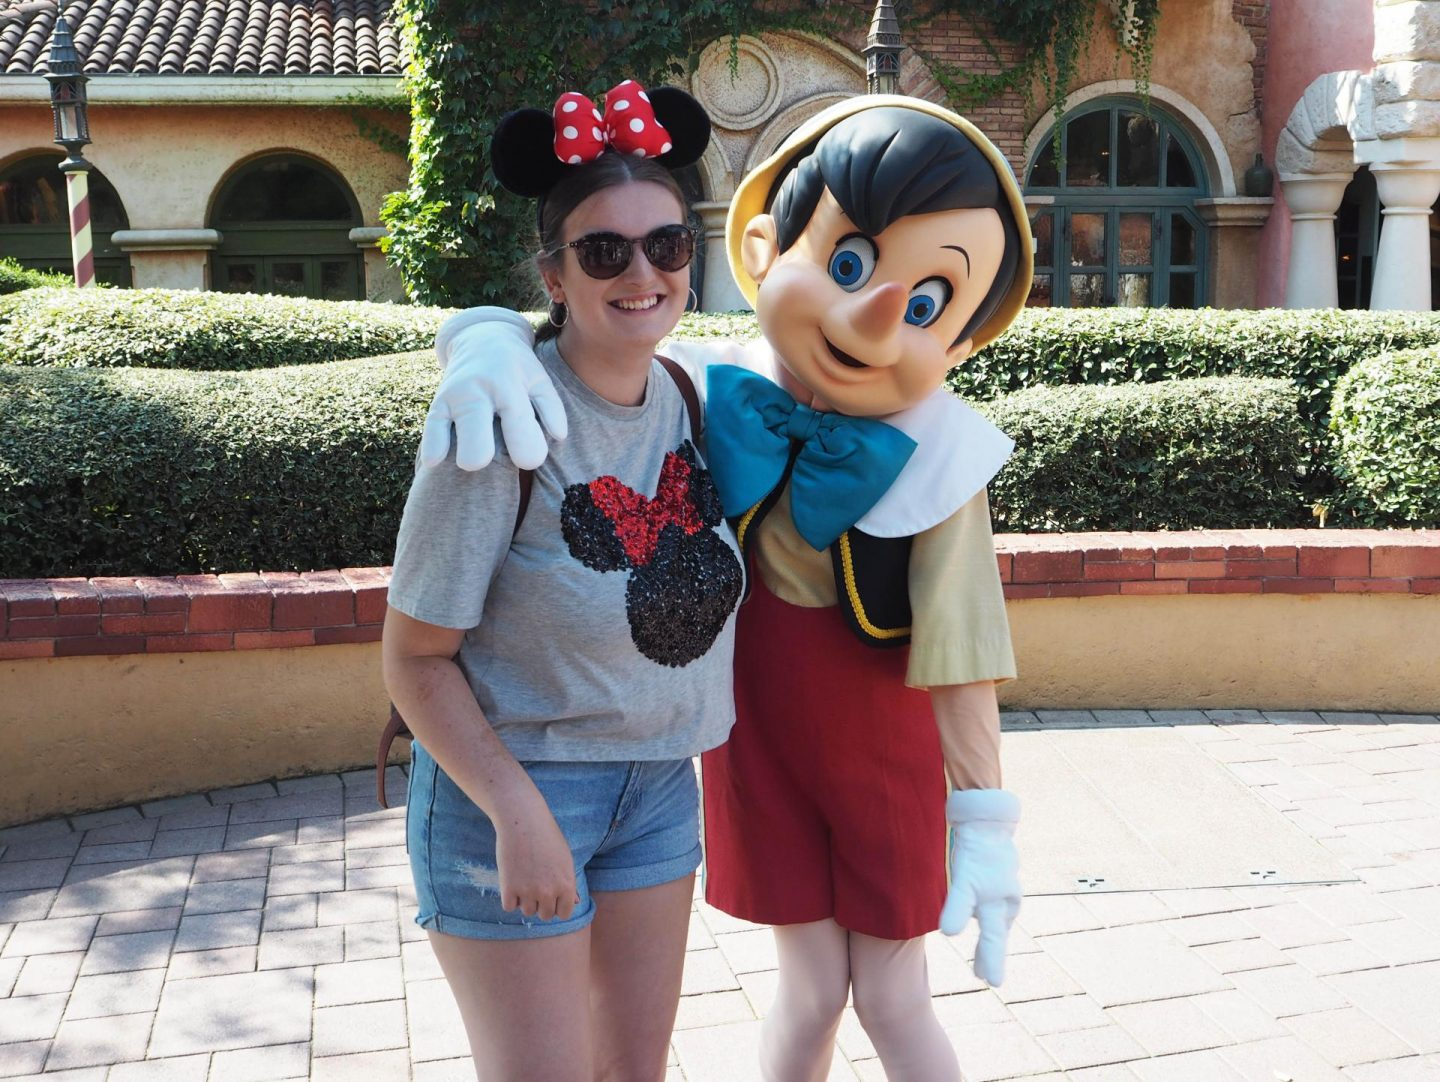 disneyland-paris-my-22nd-birthday-trip-rachel-nicole-uk-travel-disney-blogger-13